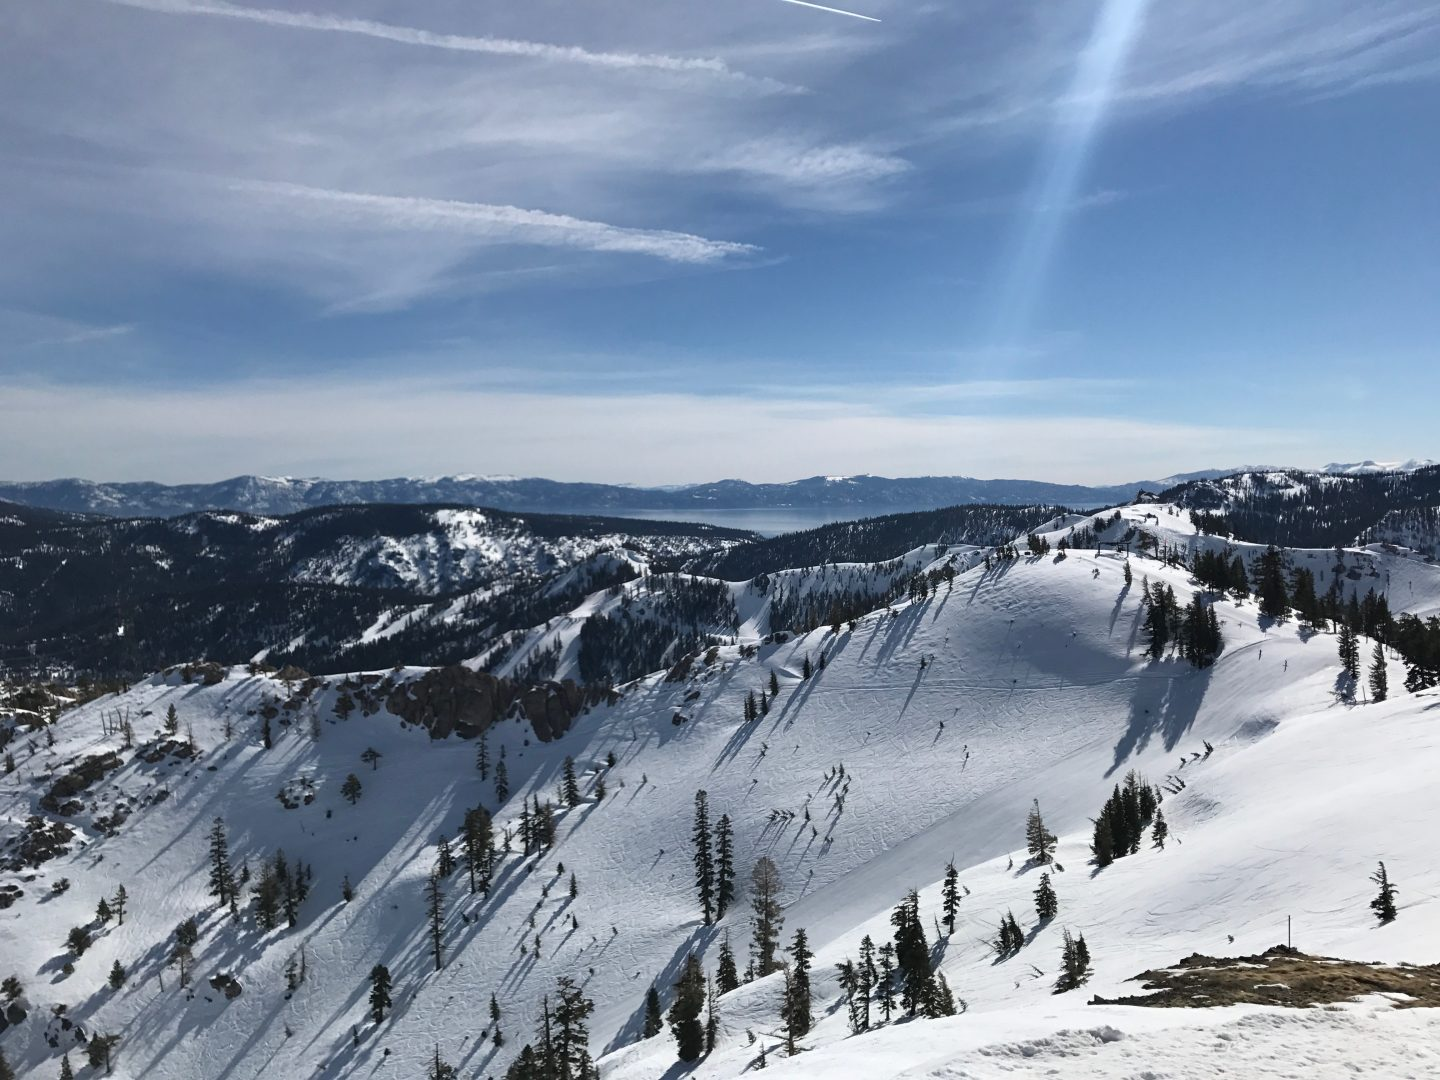 Weekend Getaway in Squaw Valley